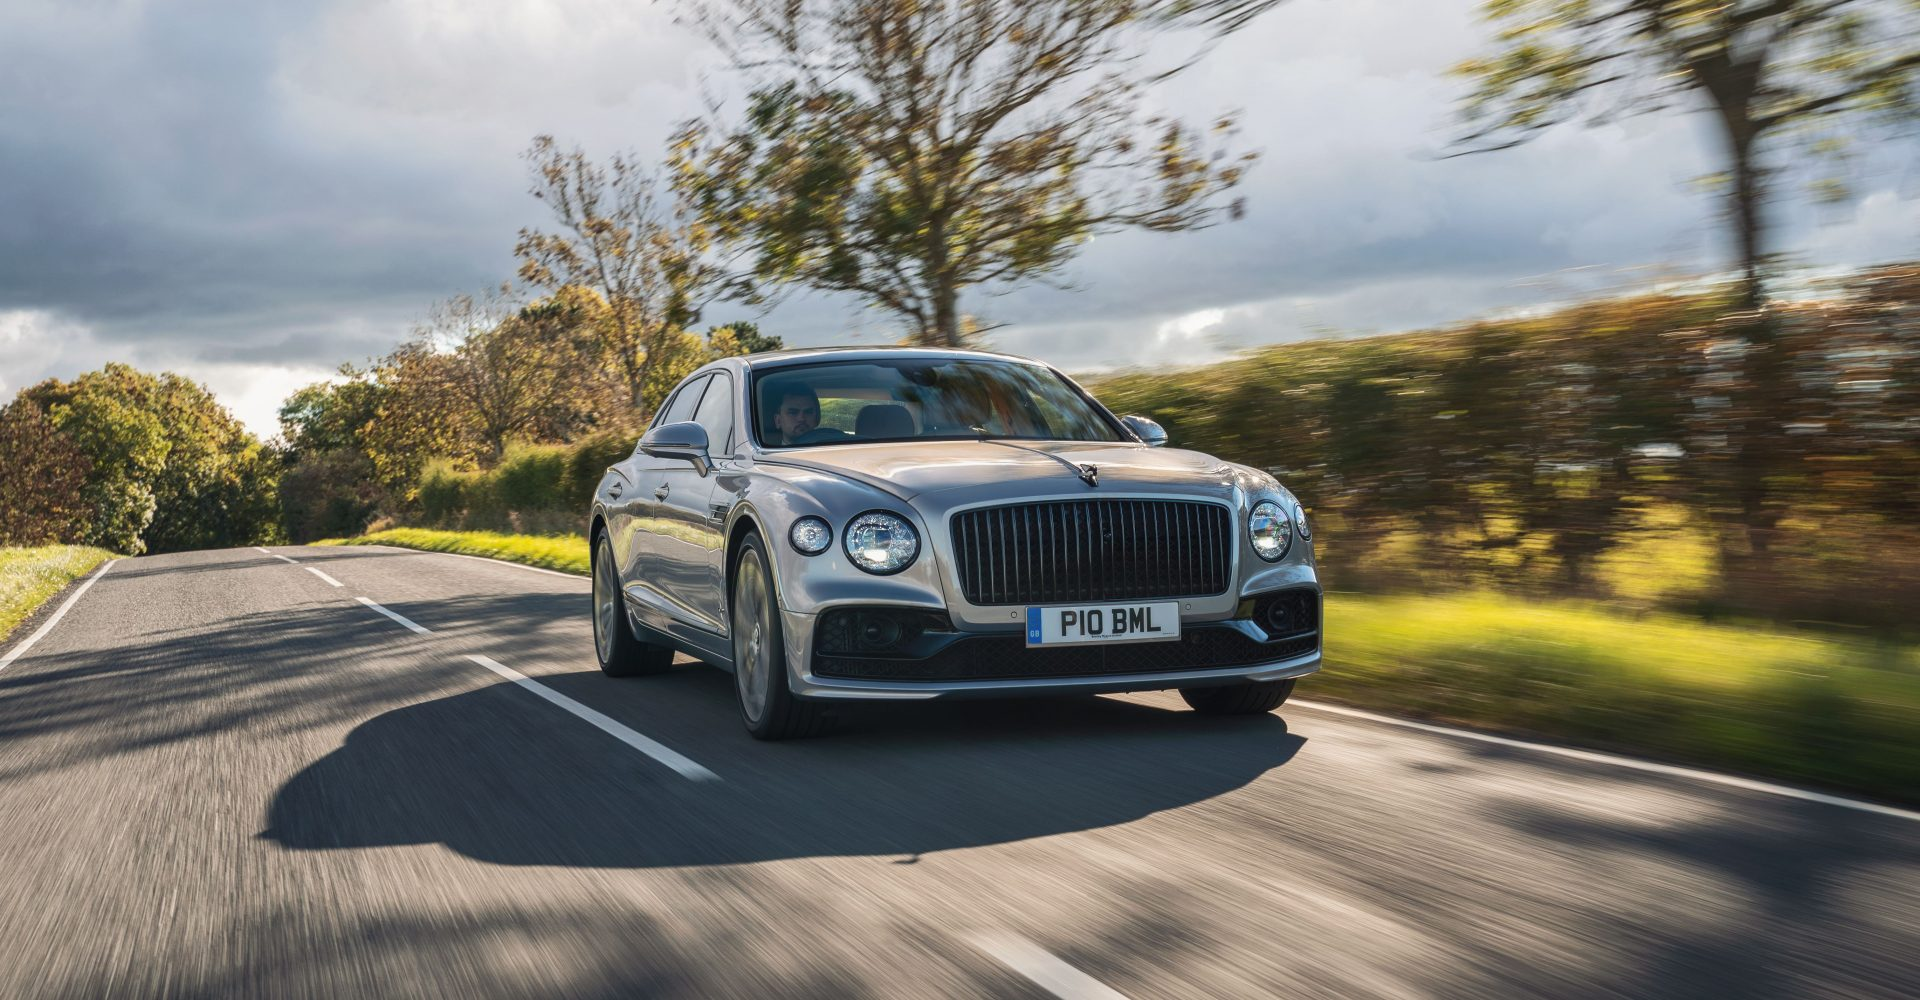 First Drive: Bentley's Flying Spur aims to redefine luxury saloons